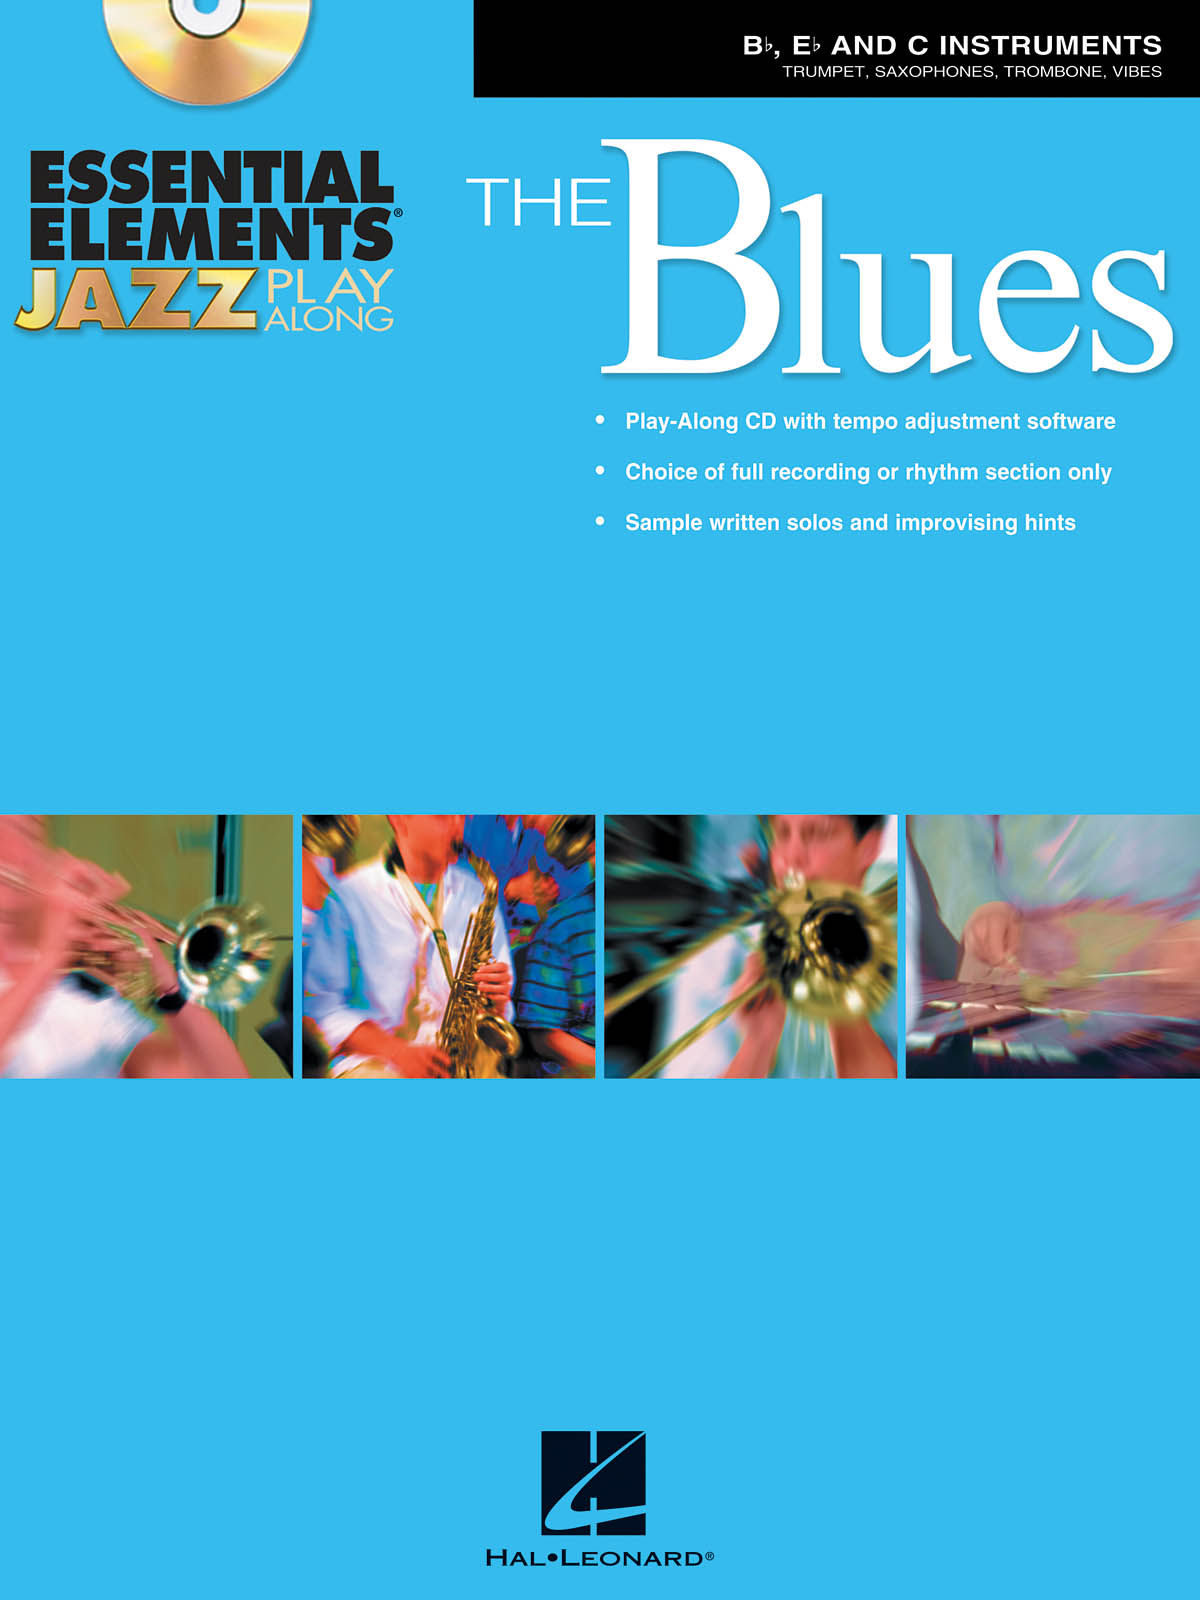 Essential Elements Jazz Play Along - The Blues: Jazz Ensemble: Book & CD